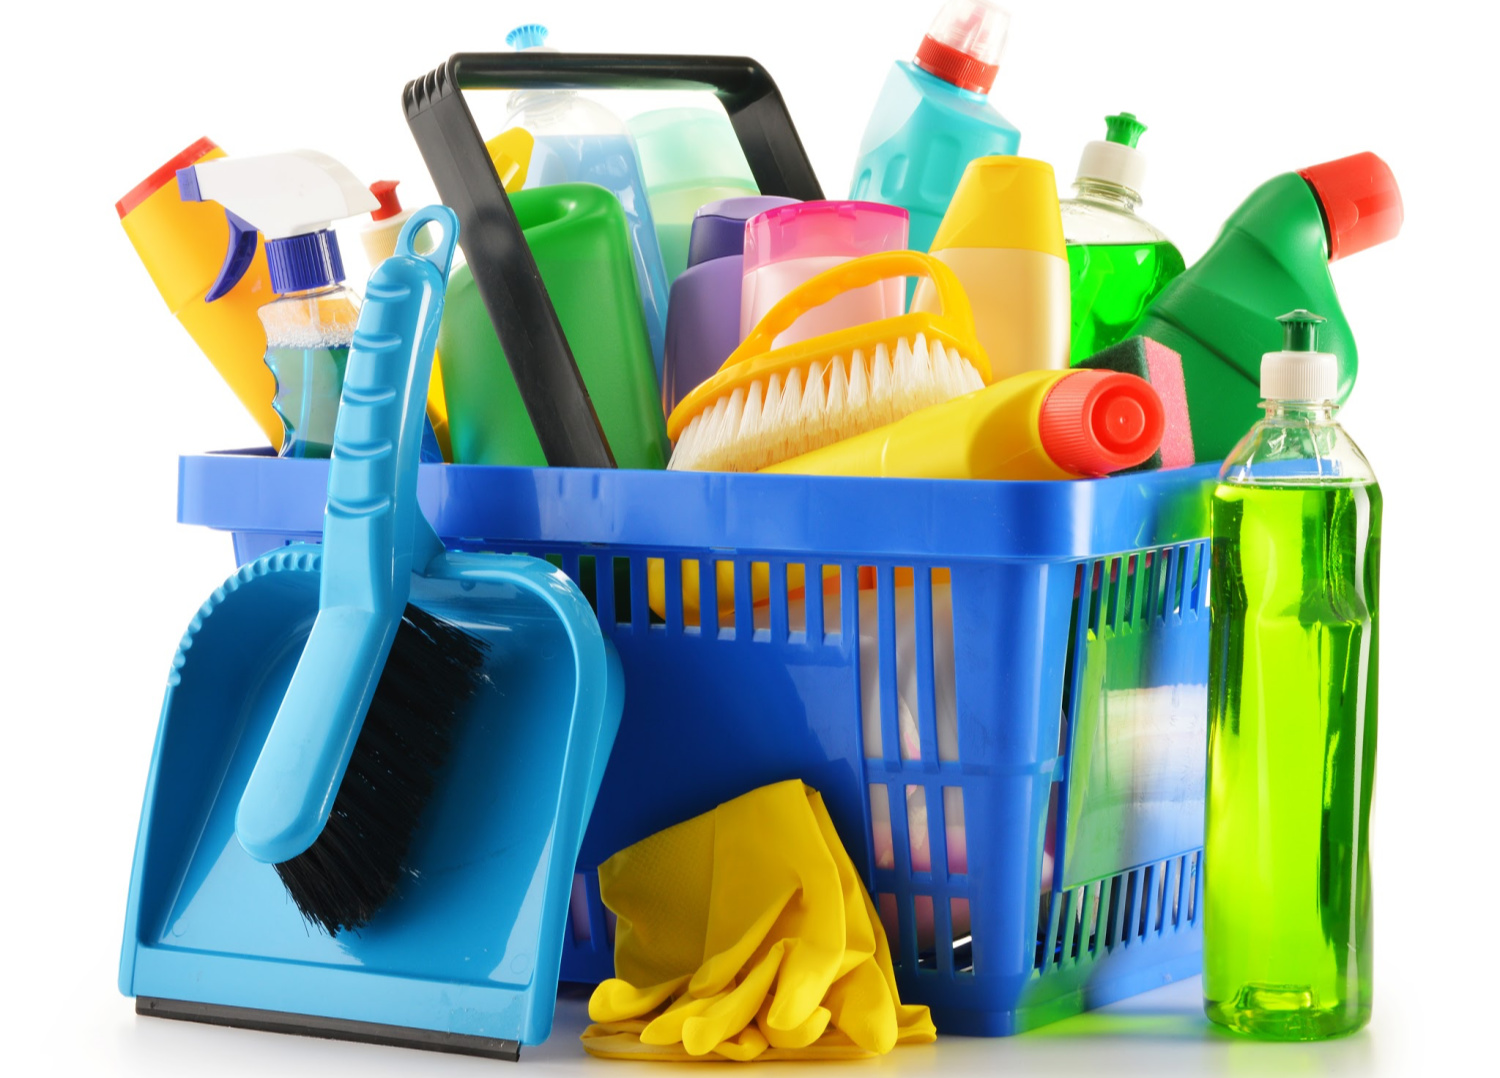 bin of cleaning supplies. Things to declutter your home checklist